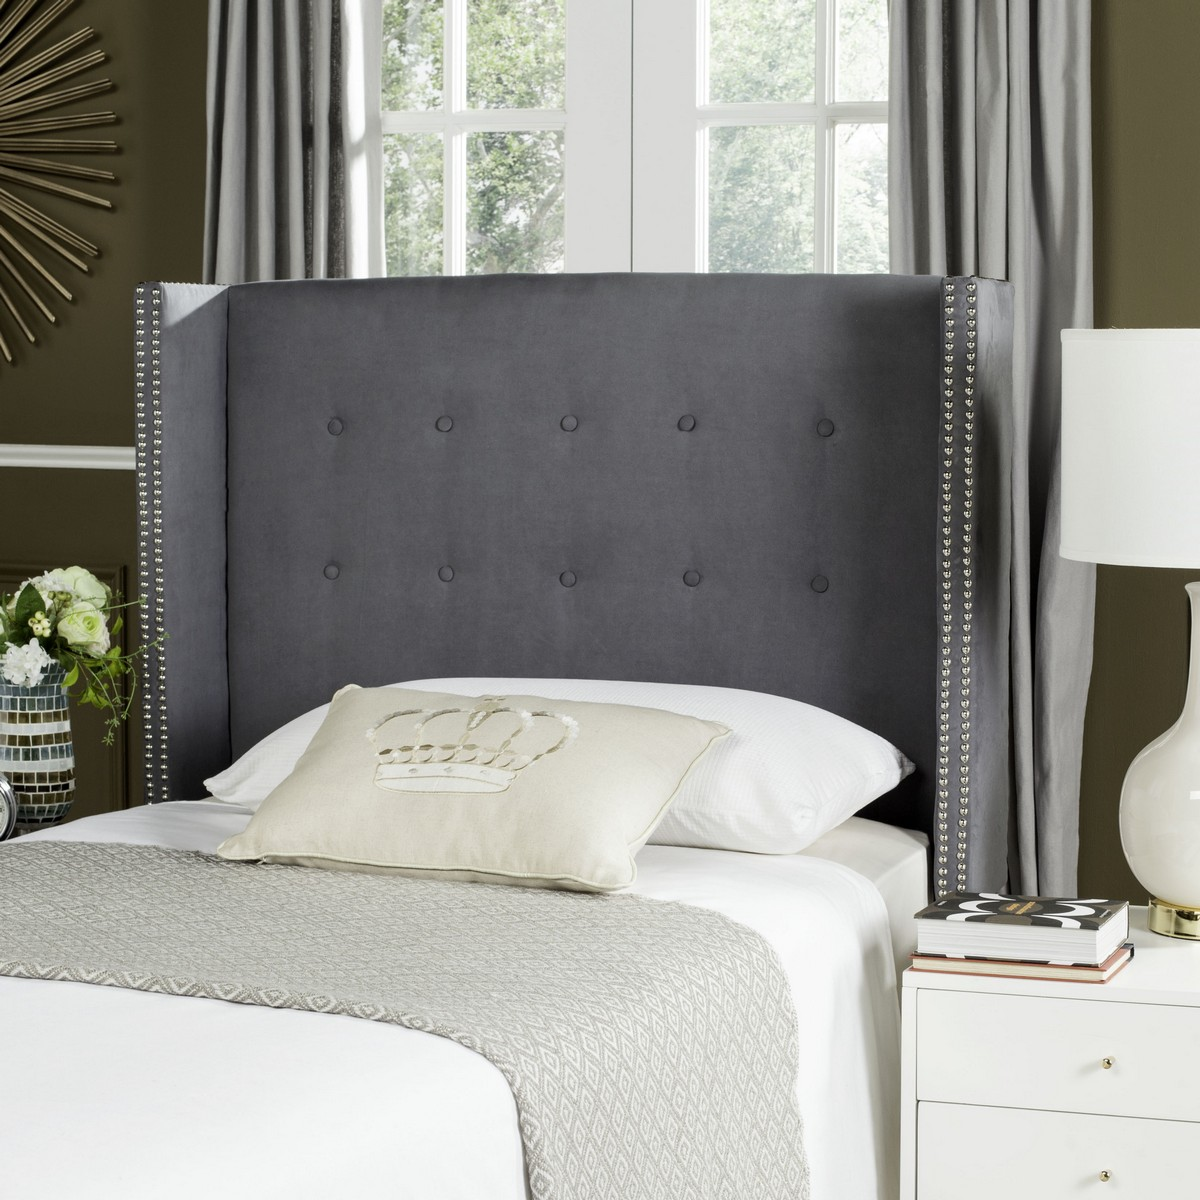 keegan grey velvet tufted winged headboard silver nail head headboards furniture by safavieh. Black Bedroom Furniture Sets. Home Design Ideas